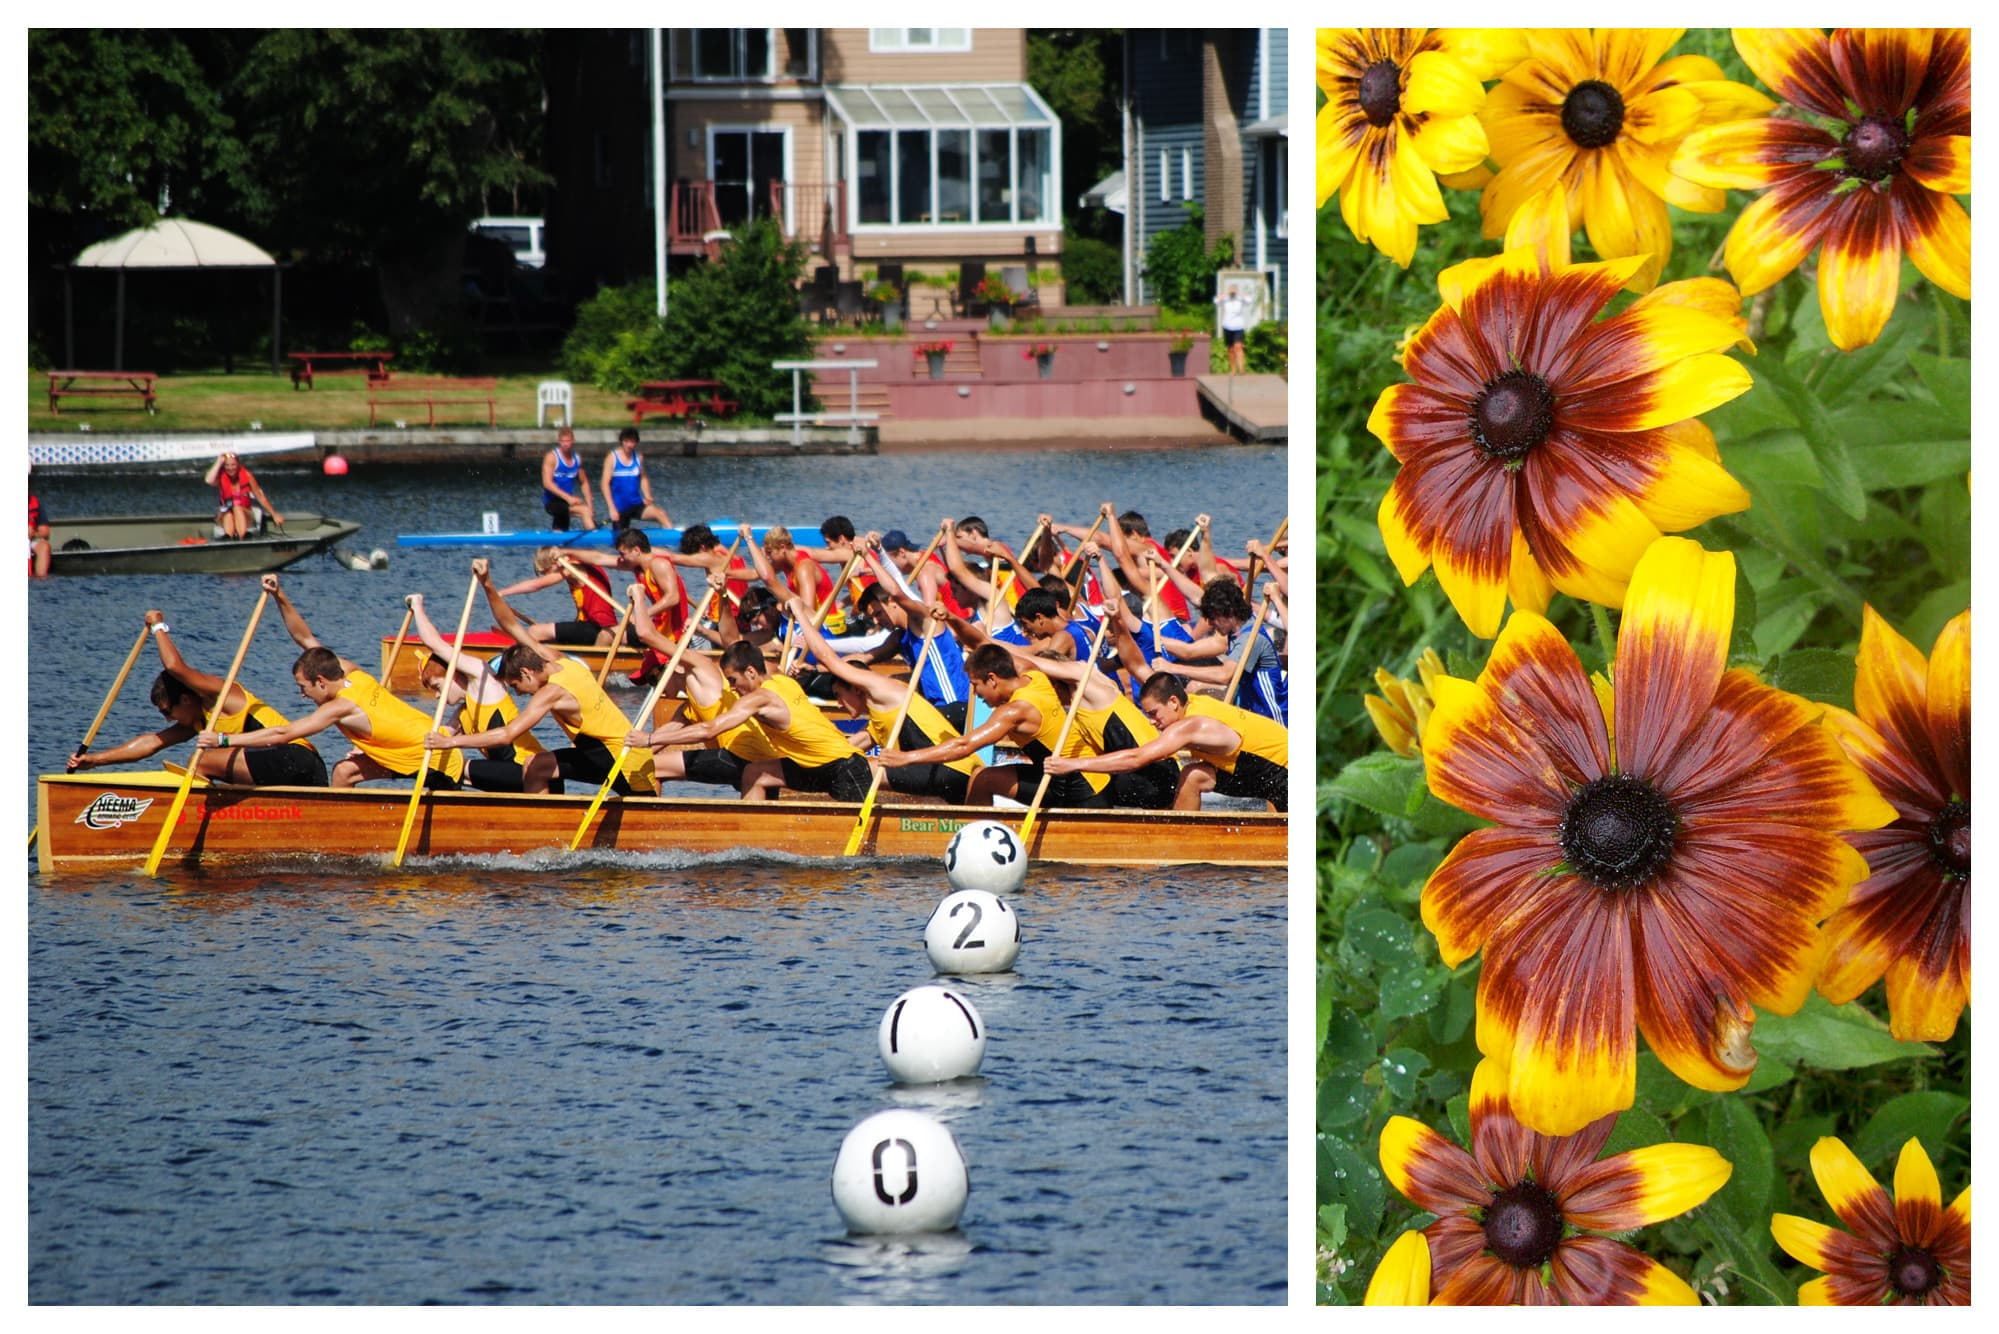 Rowers rowing and flowers blooming in Dartmouth, Nova Scotia